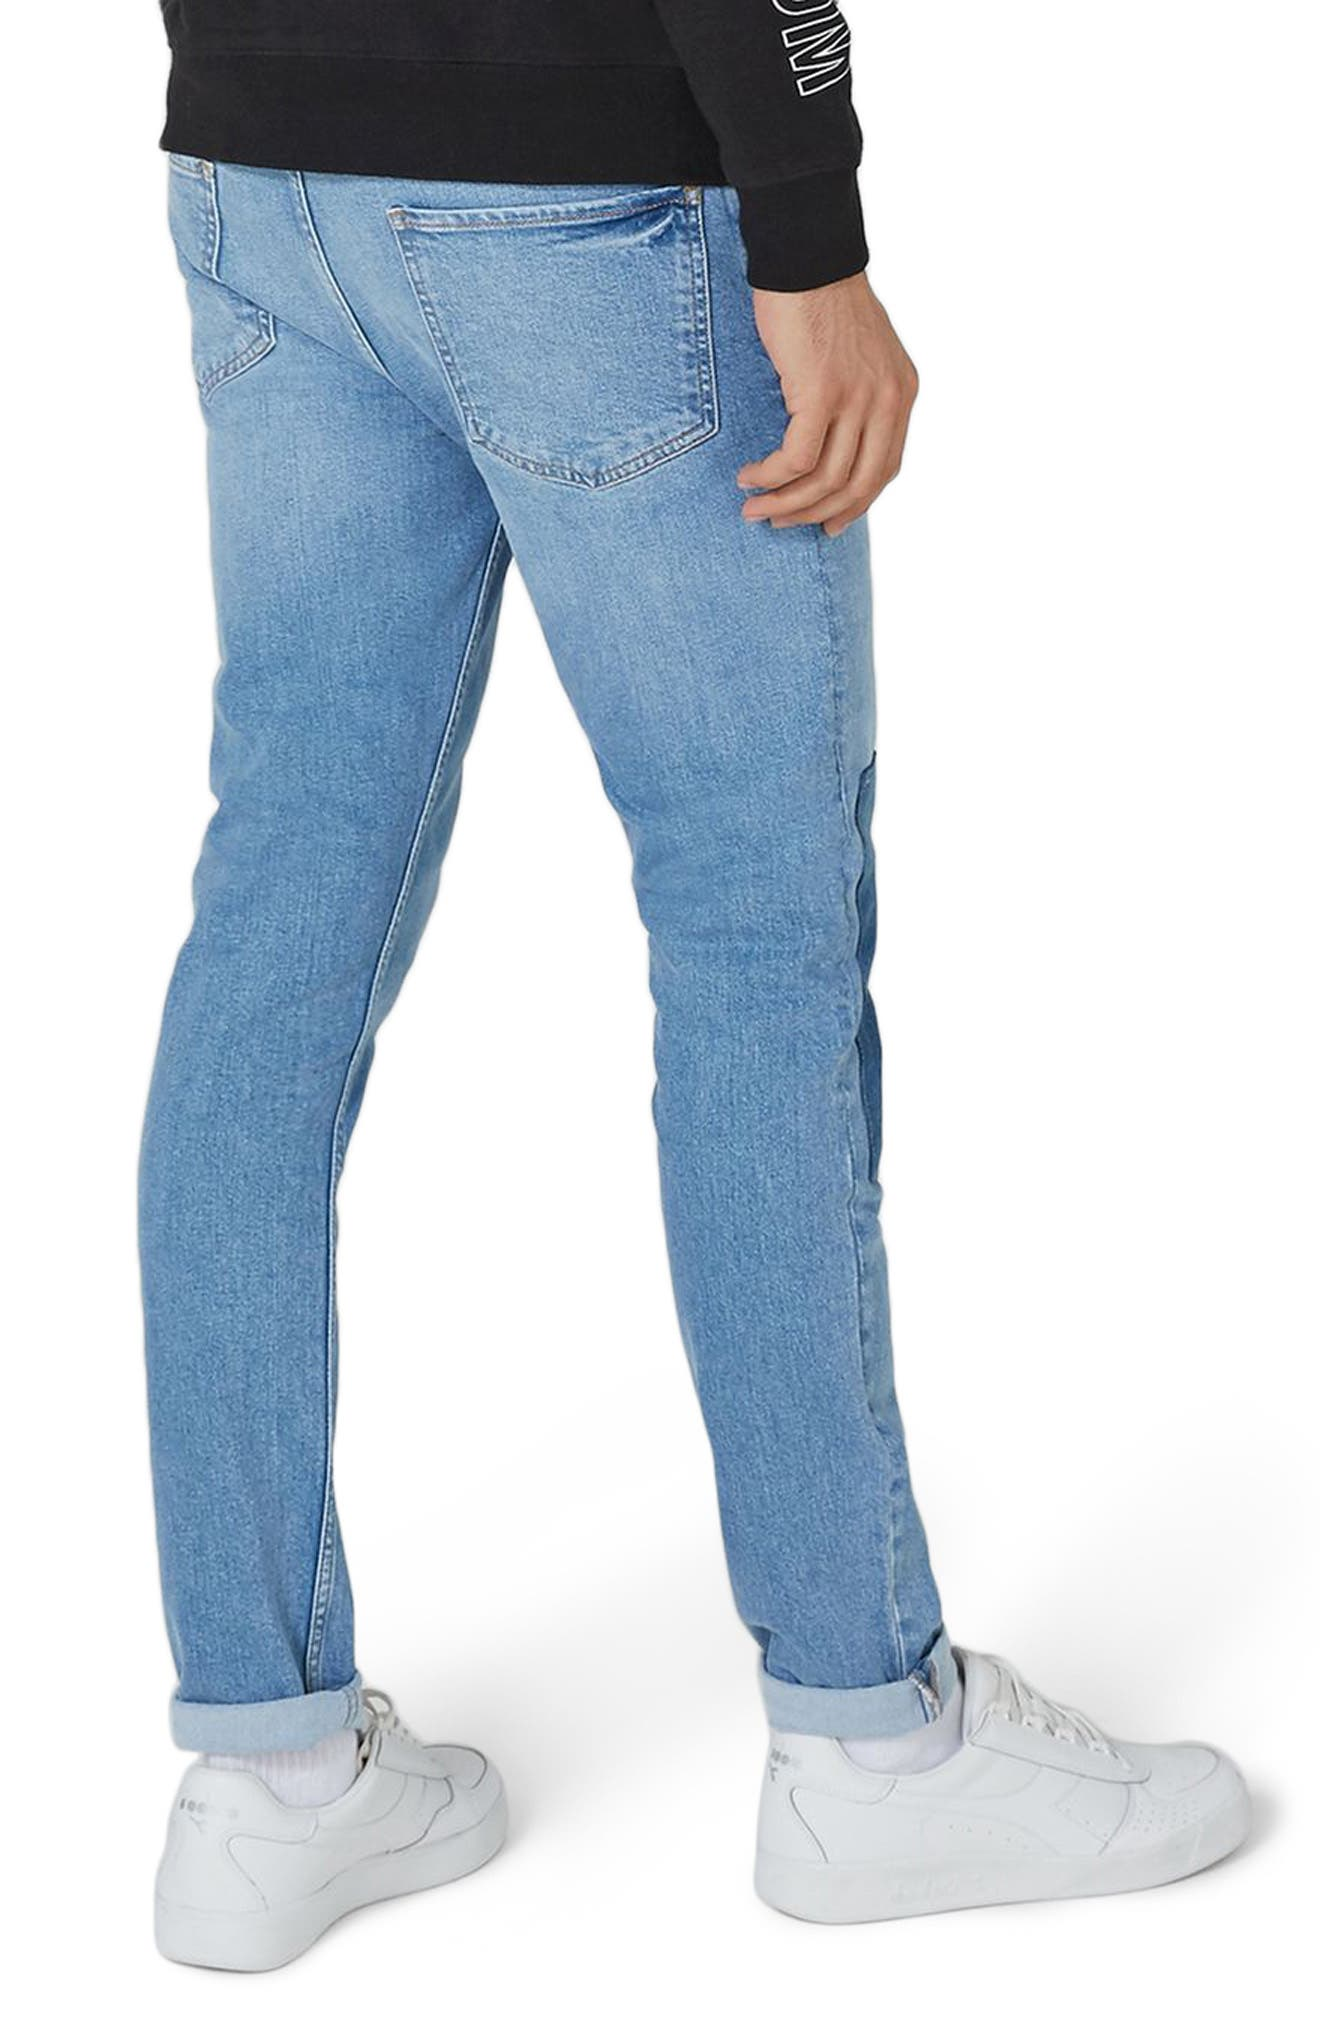 Patch Stretch Skinny Jeans,                             Alternate thumbnail 2, color,